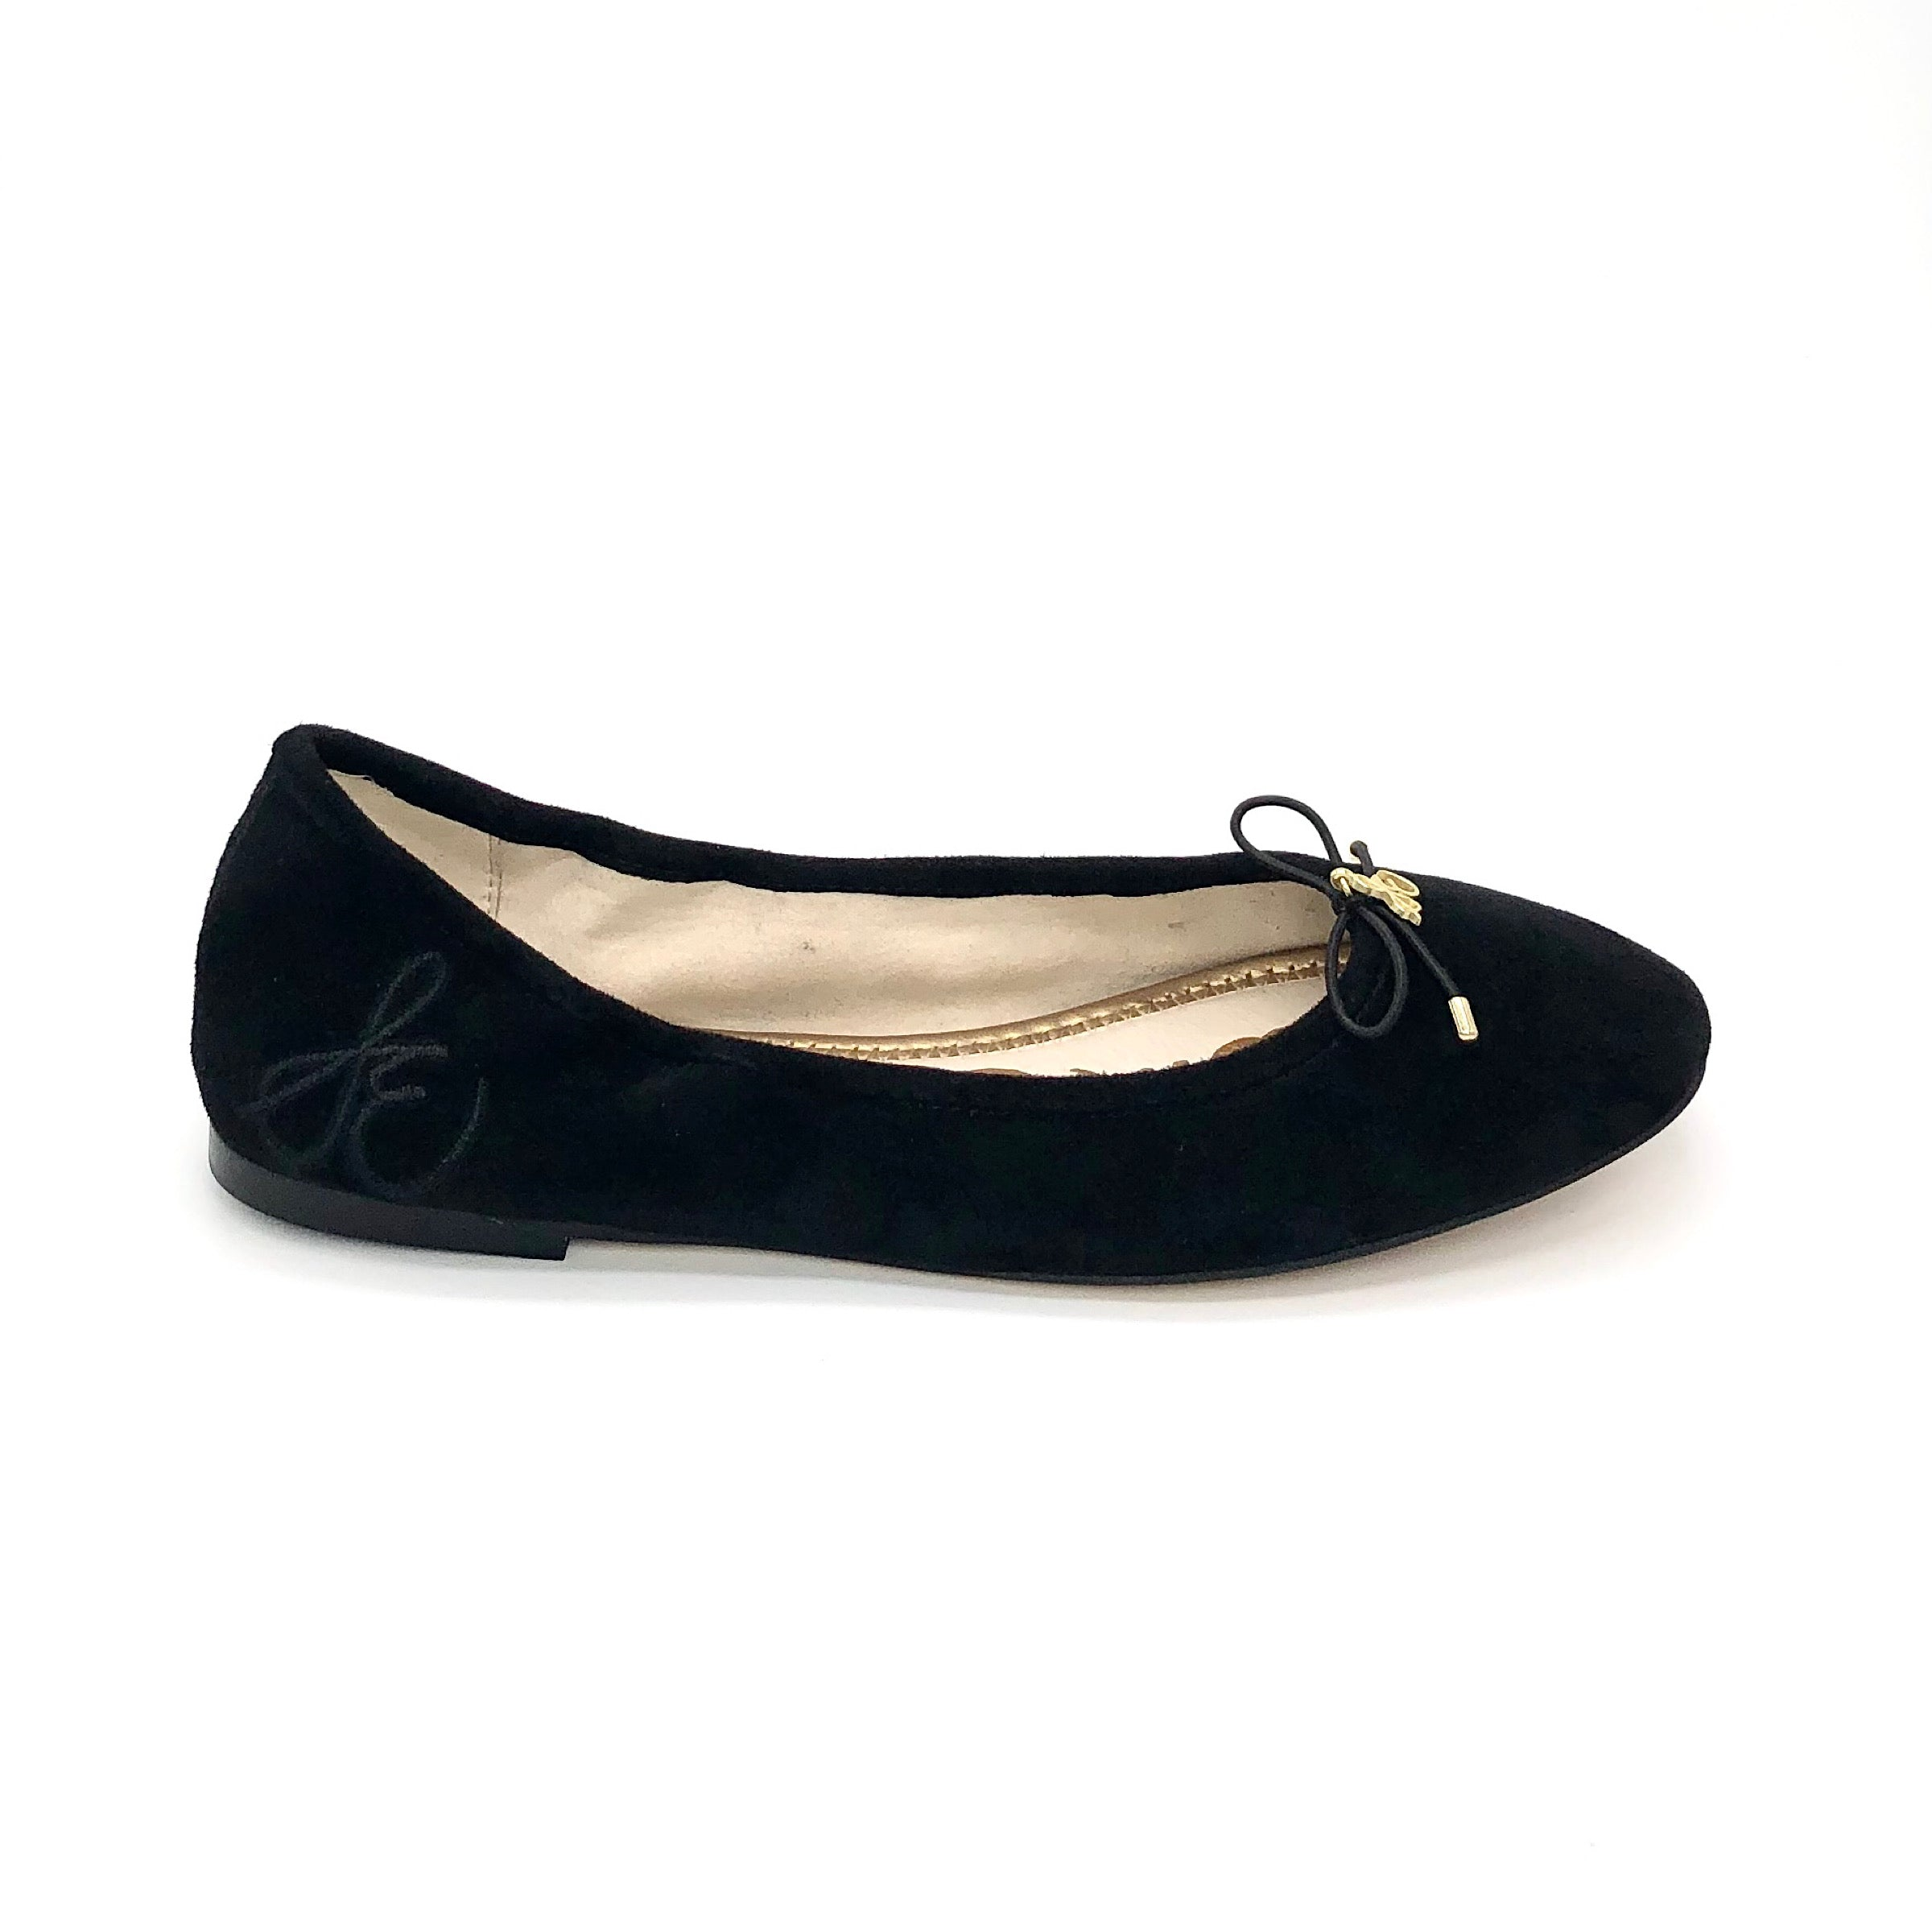 The Classic Ballet in Black Suede